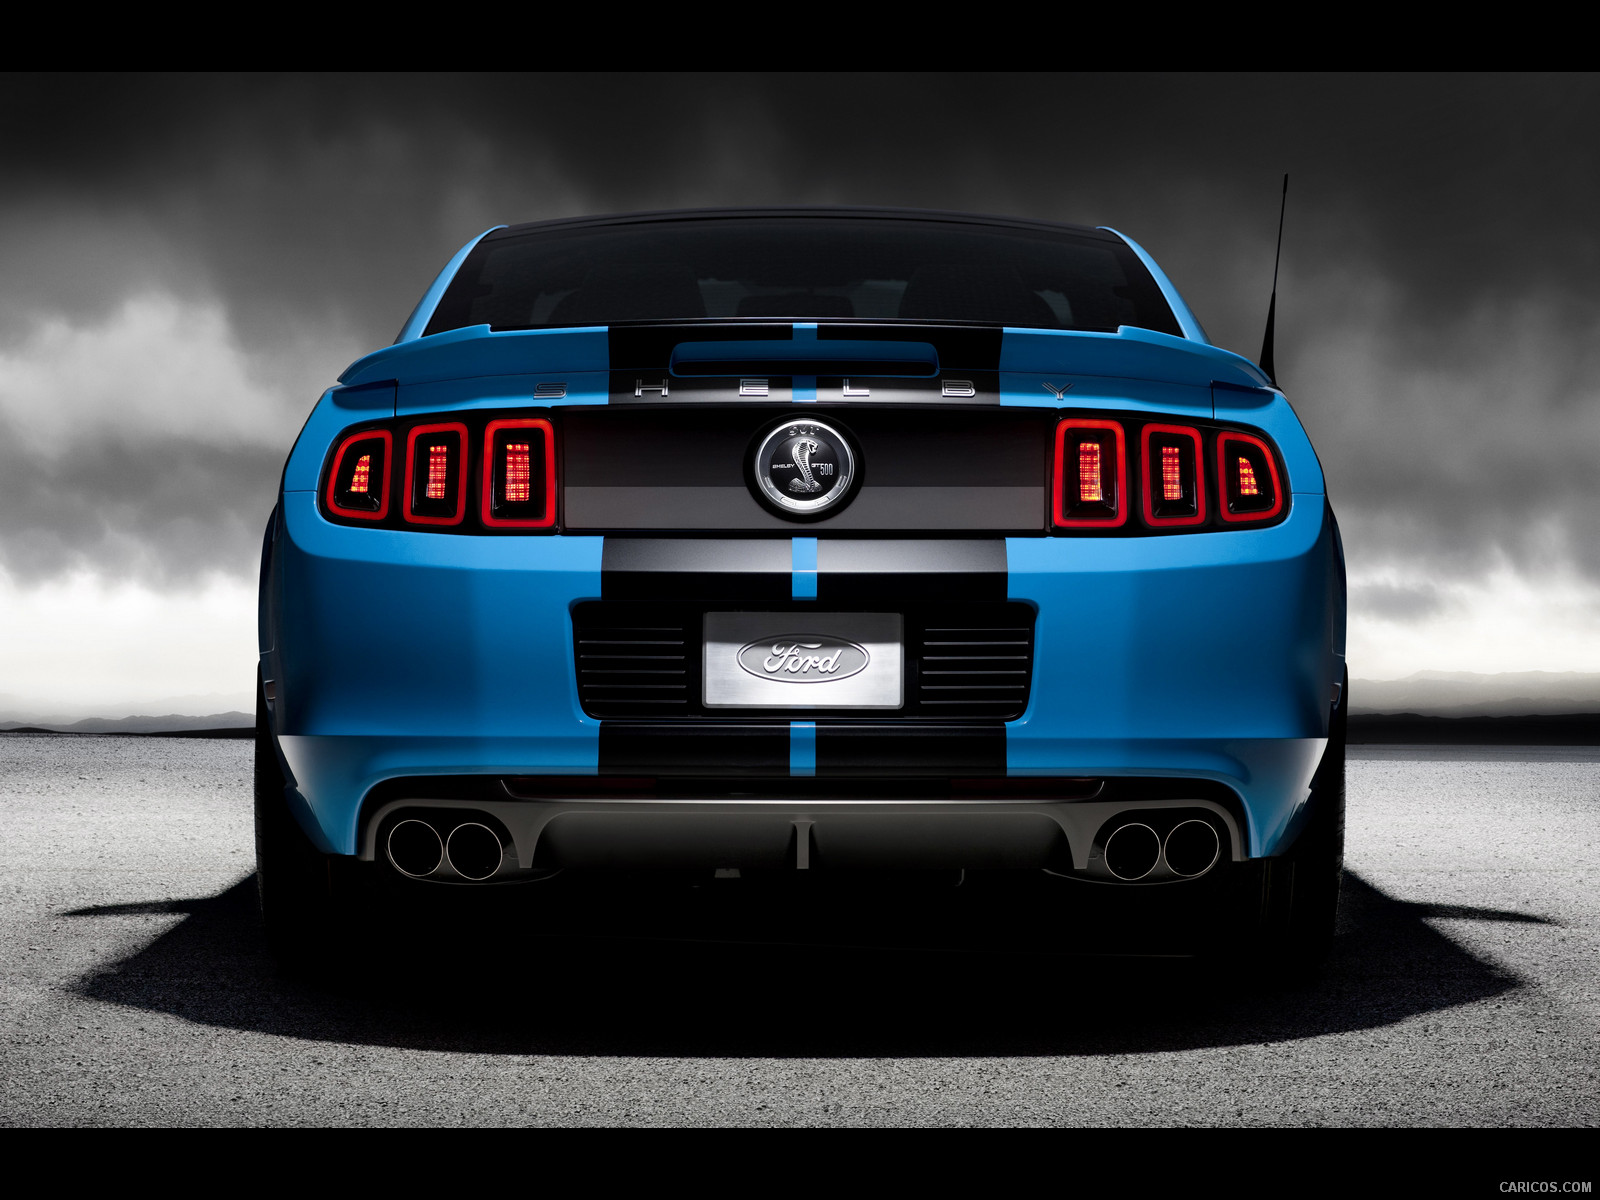 1600x1200 - Ford Mustang GT500 Wallpapers 13